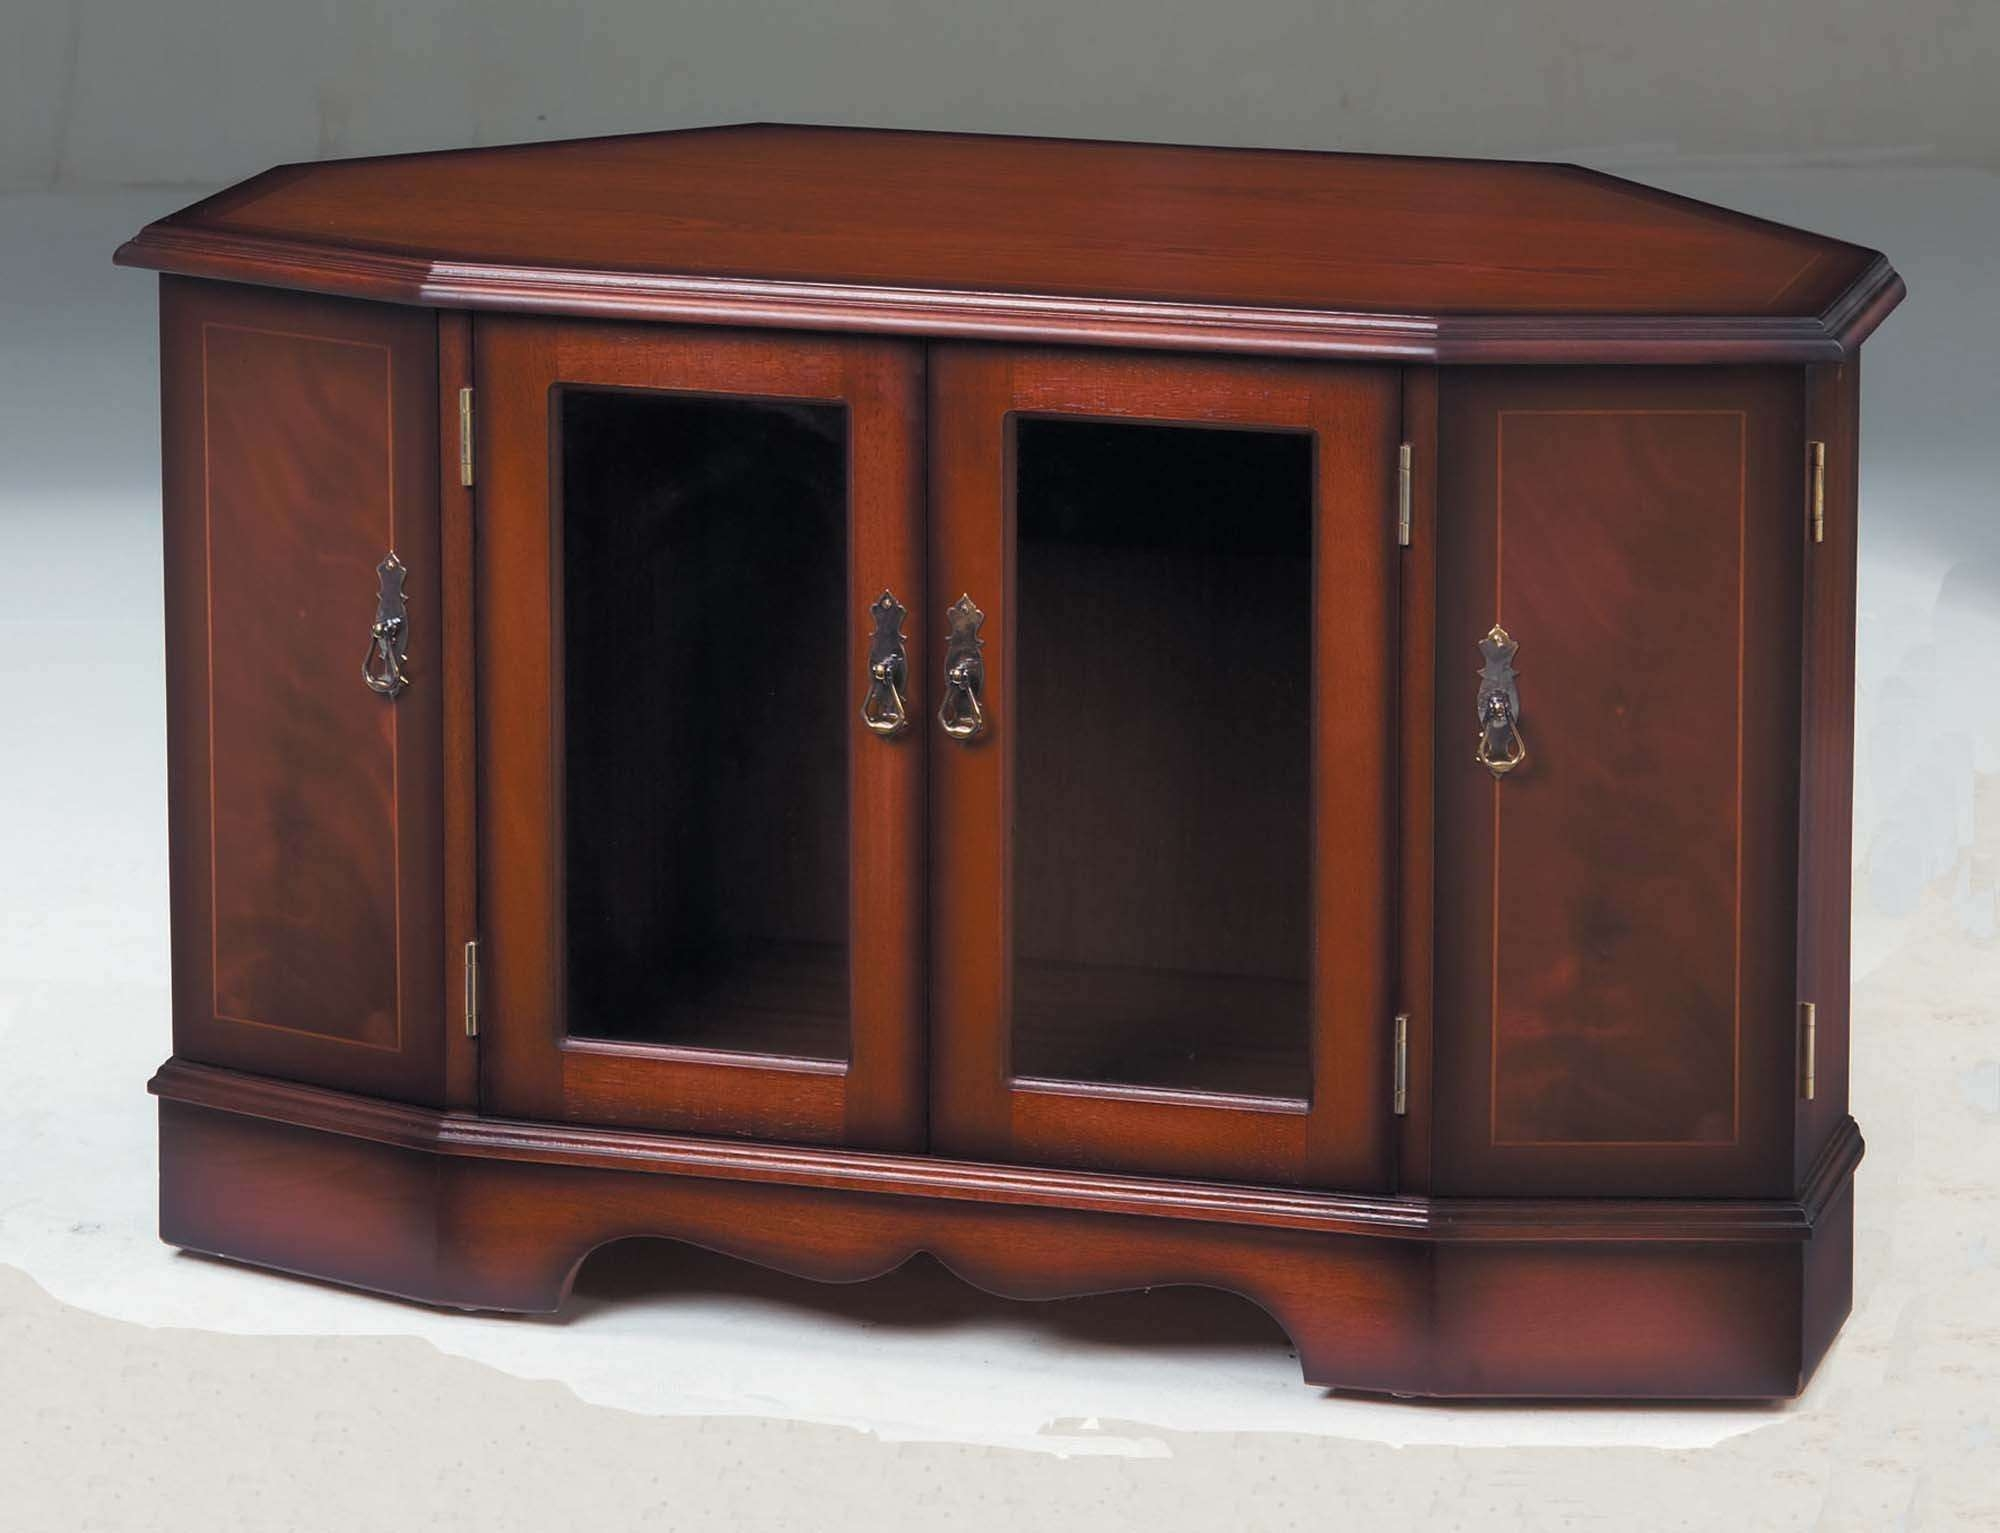 Strongbow Mahogany 1037 Corner Tv Cabinet | Tr Hayes – Furniture Inside Mahogany Tv Stands Furniture (View 13 of 15)